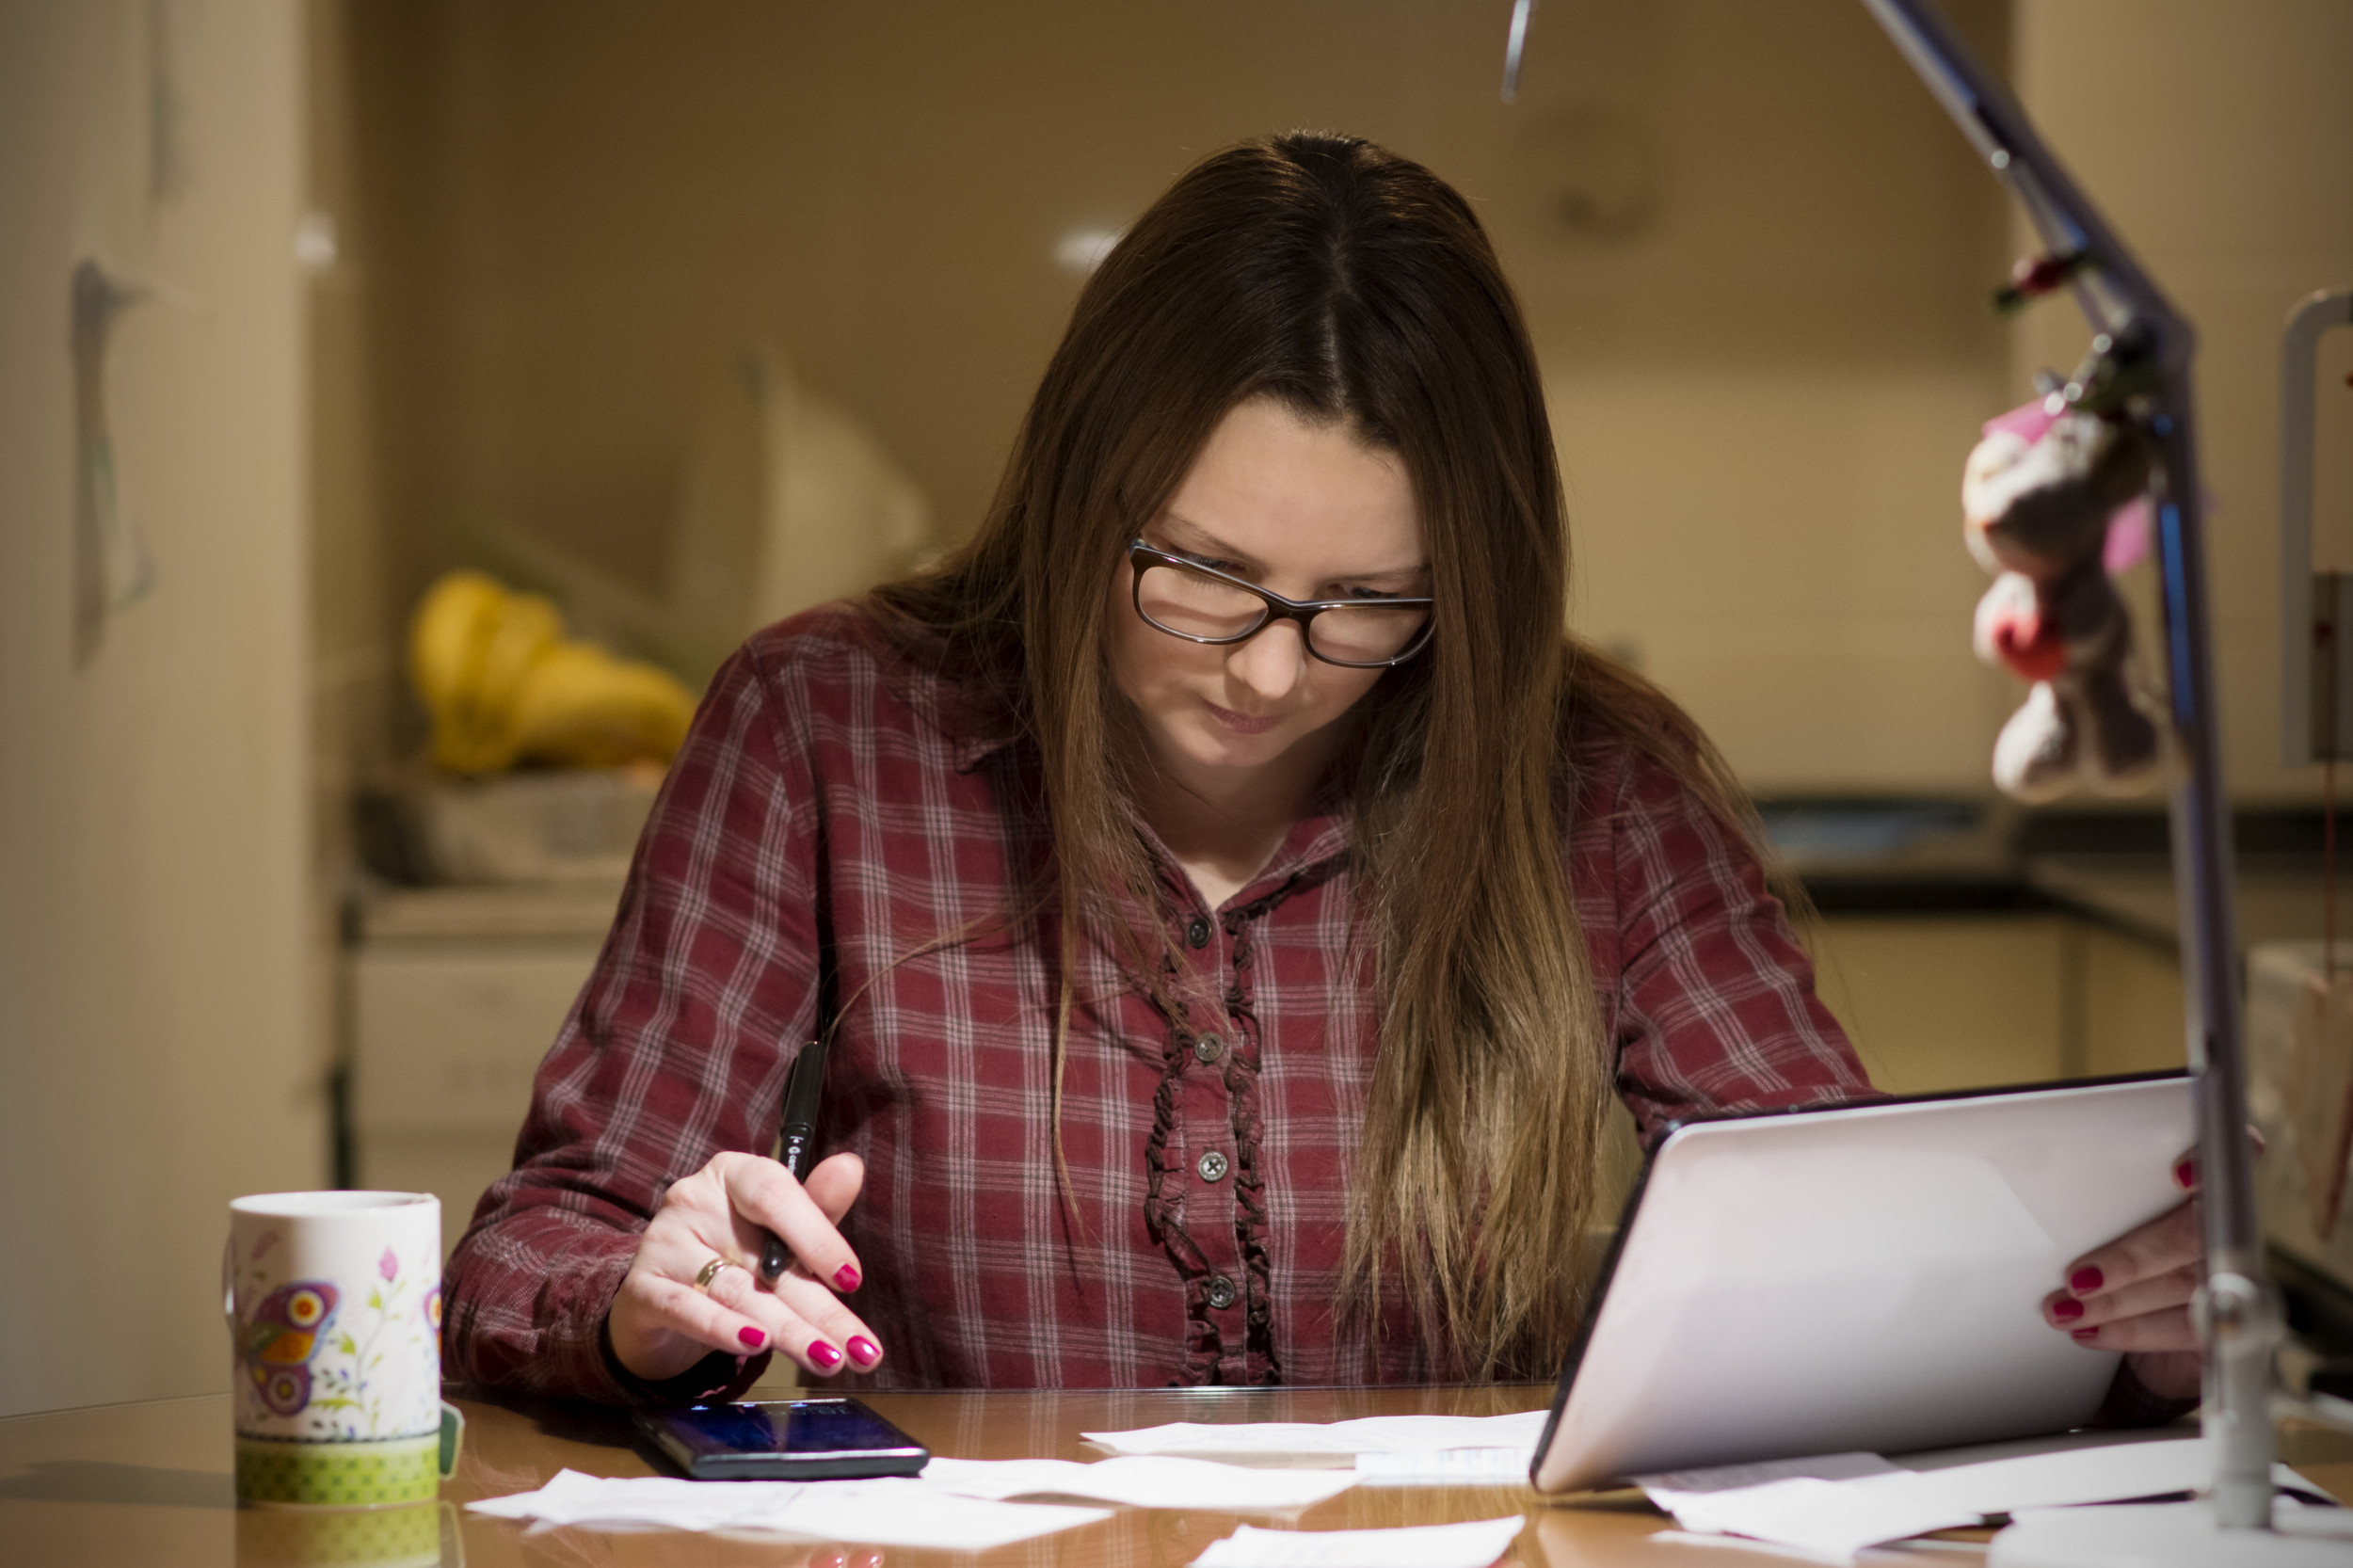 8 debt reduction mistakes even smart people make